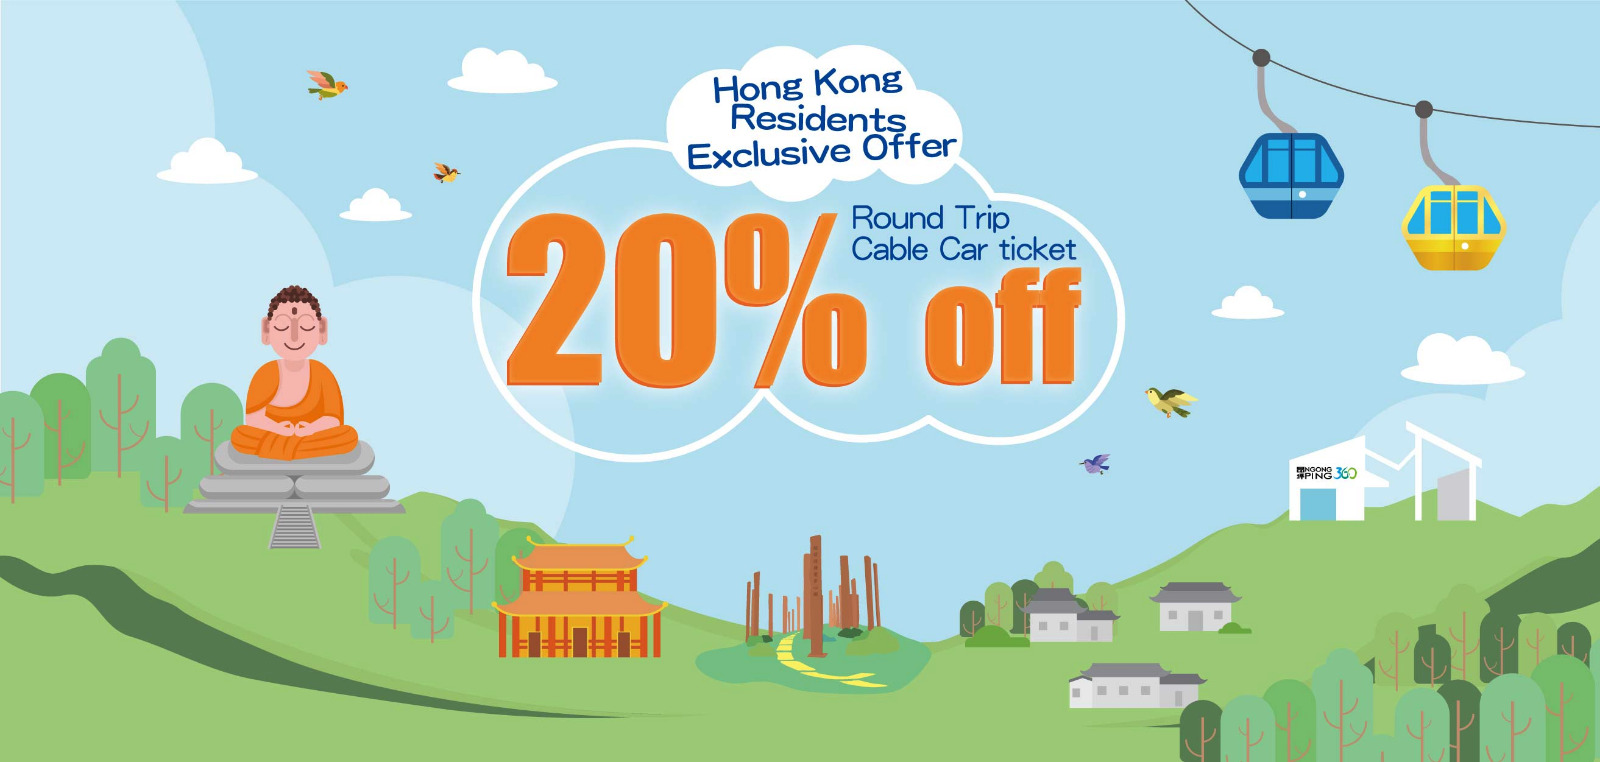 Hong Kong Residents Exclusive Offer: 20% off Round Trip Cable Car ticket